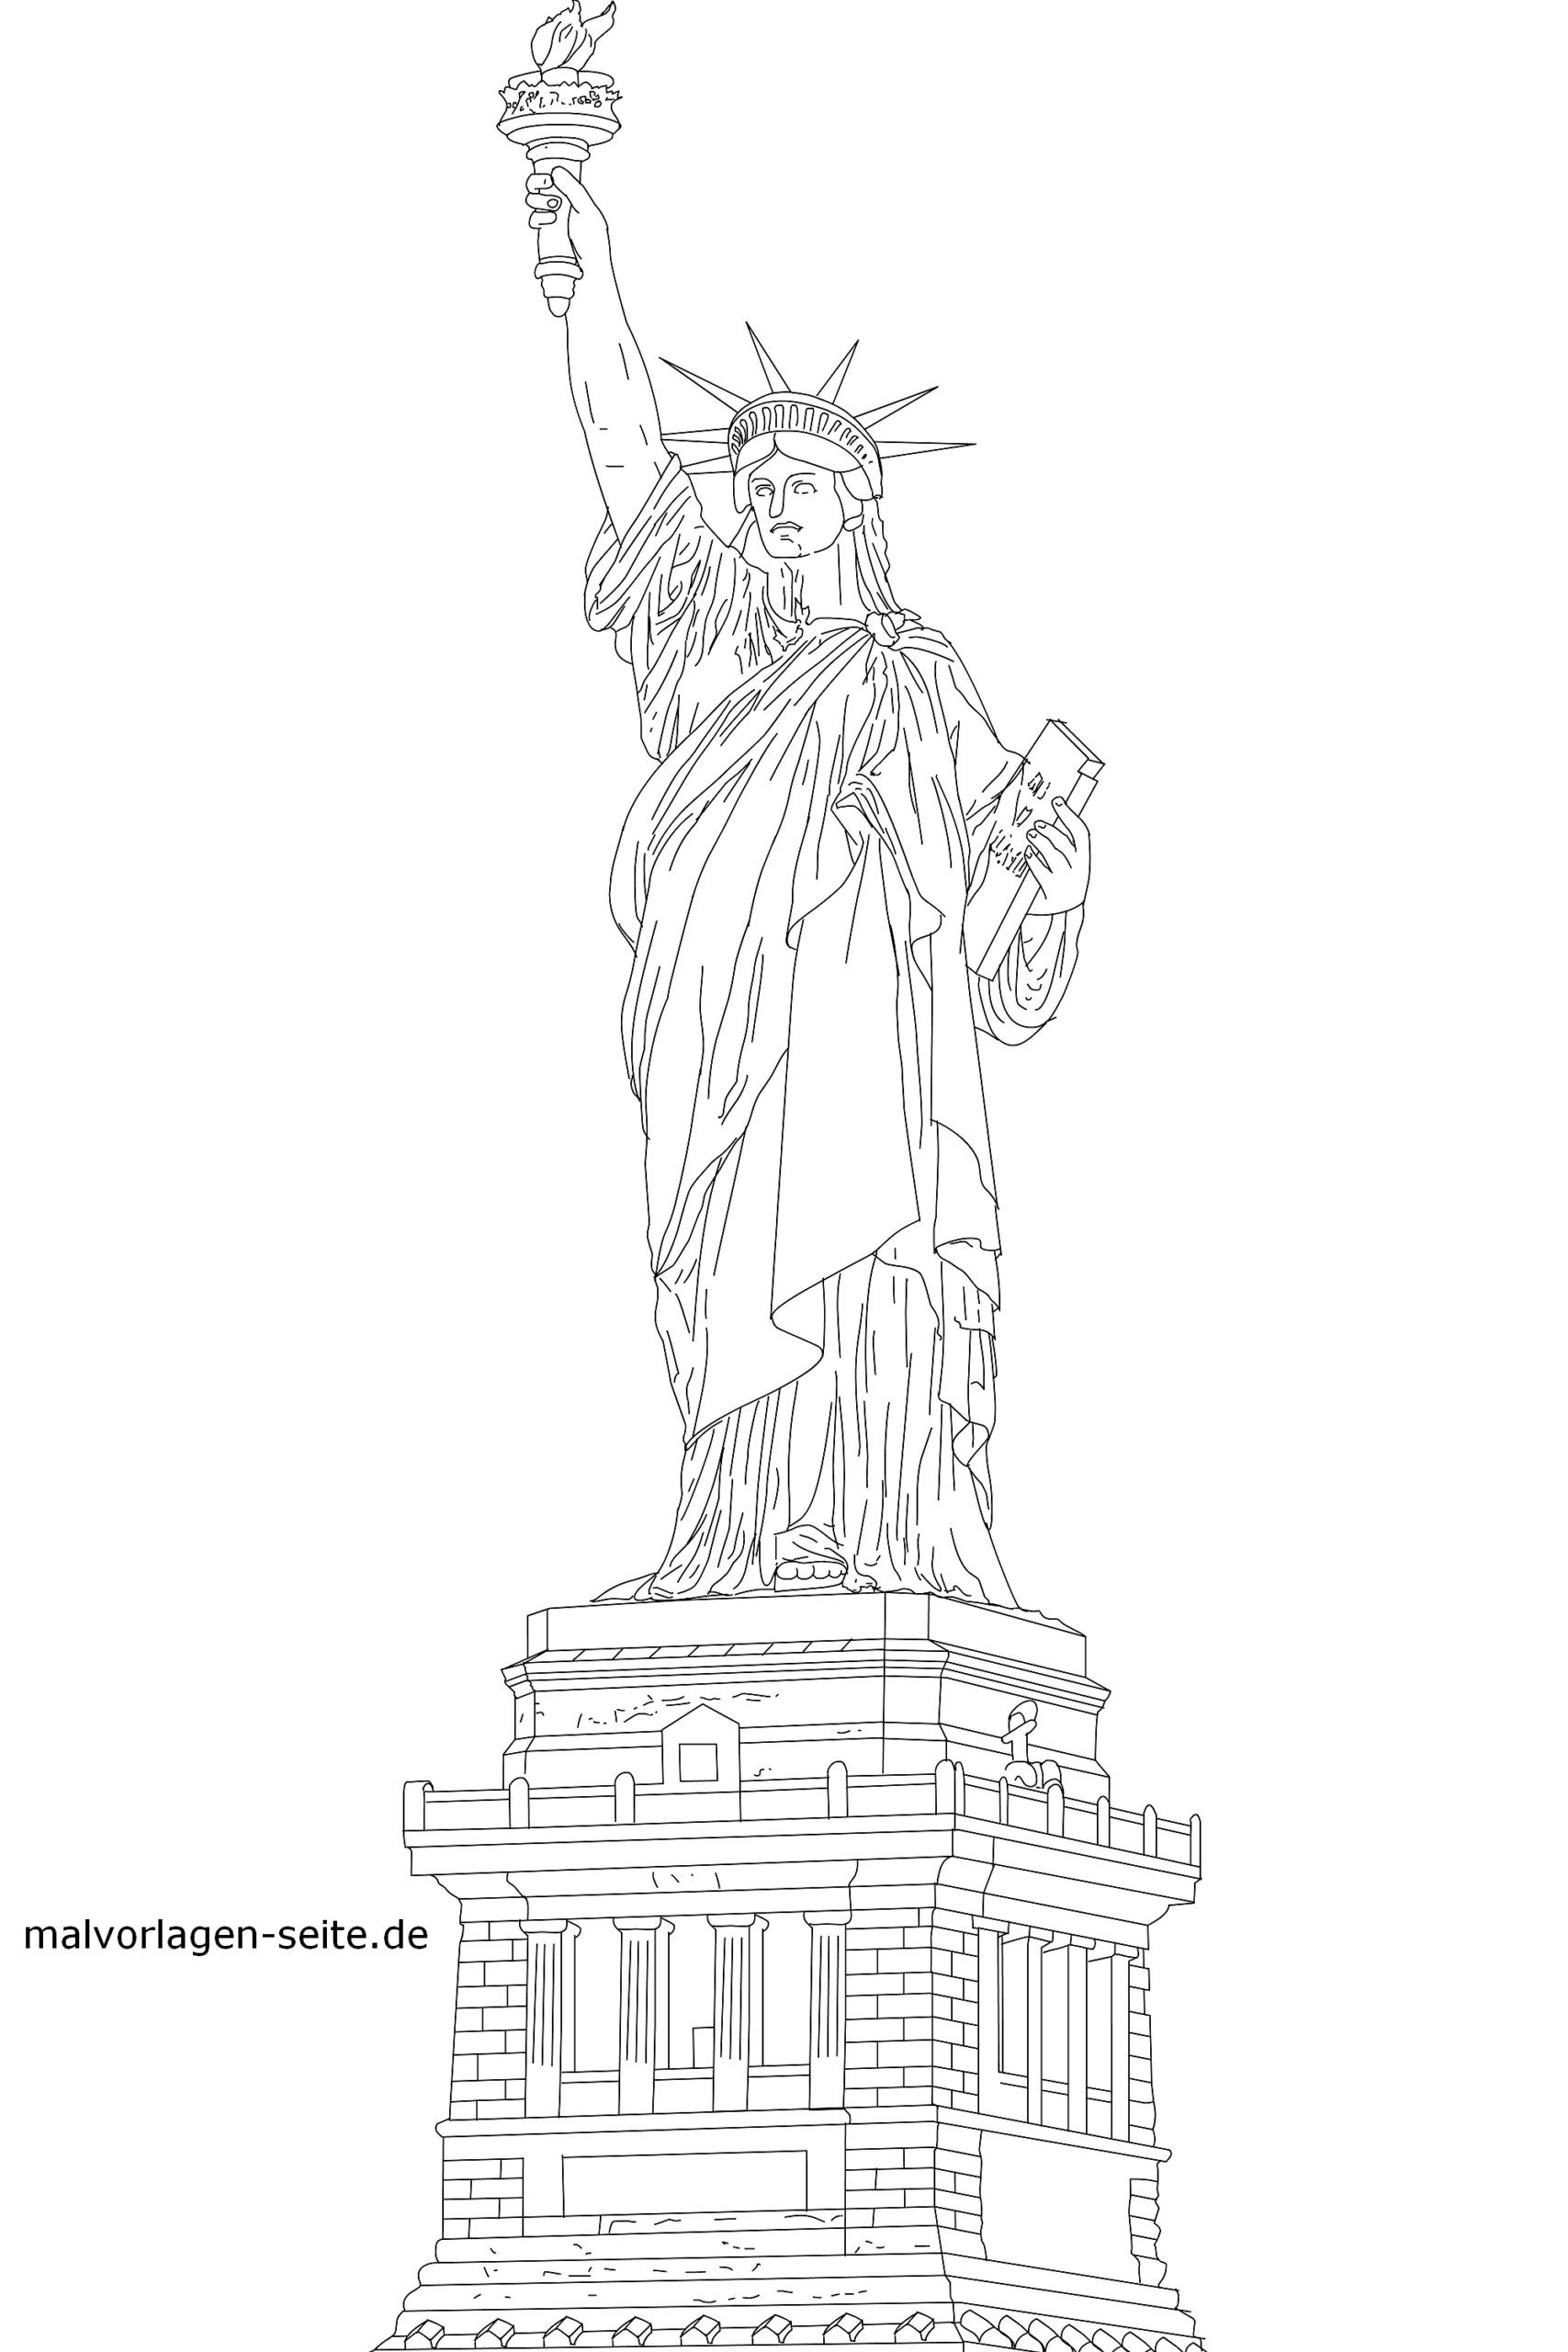 - Coloring The Statue Of Liberty, New York Coloring Page